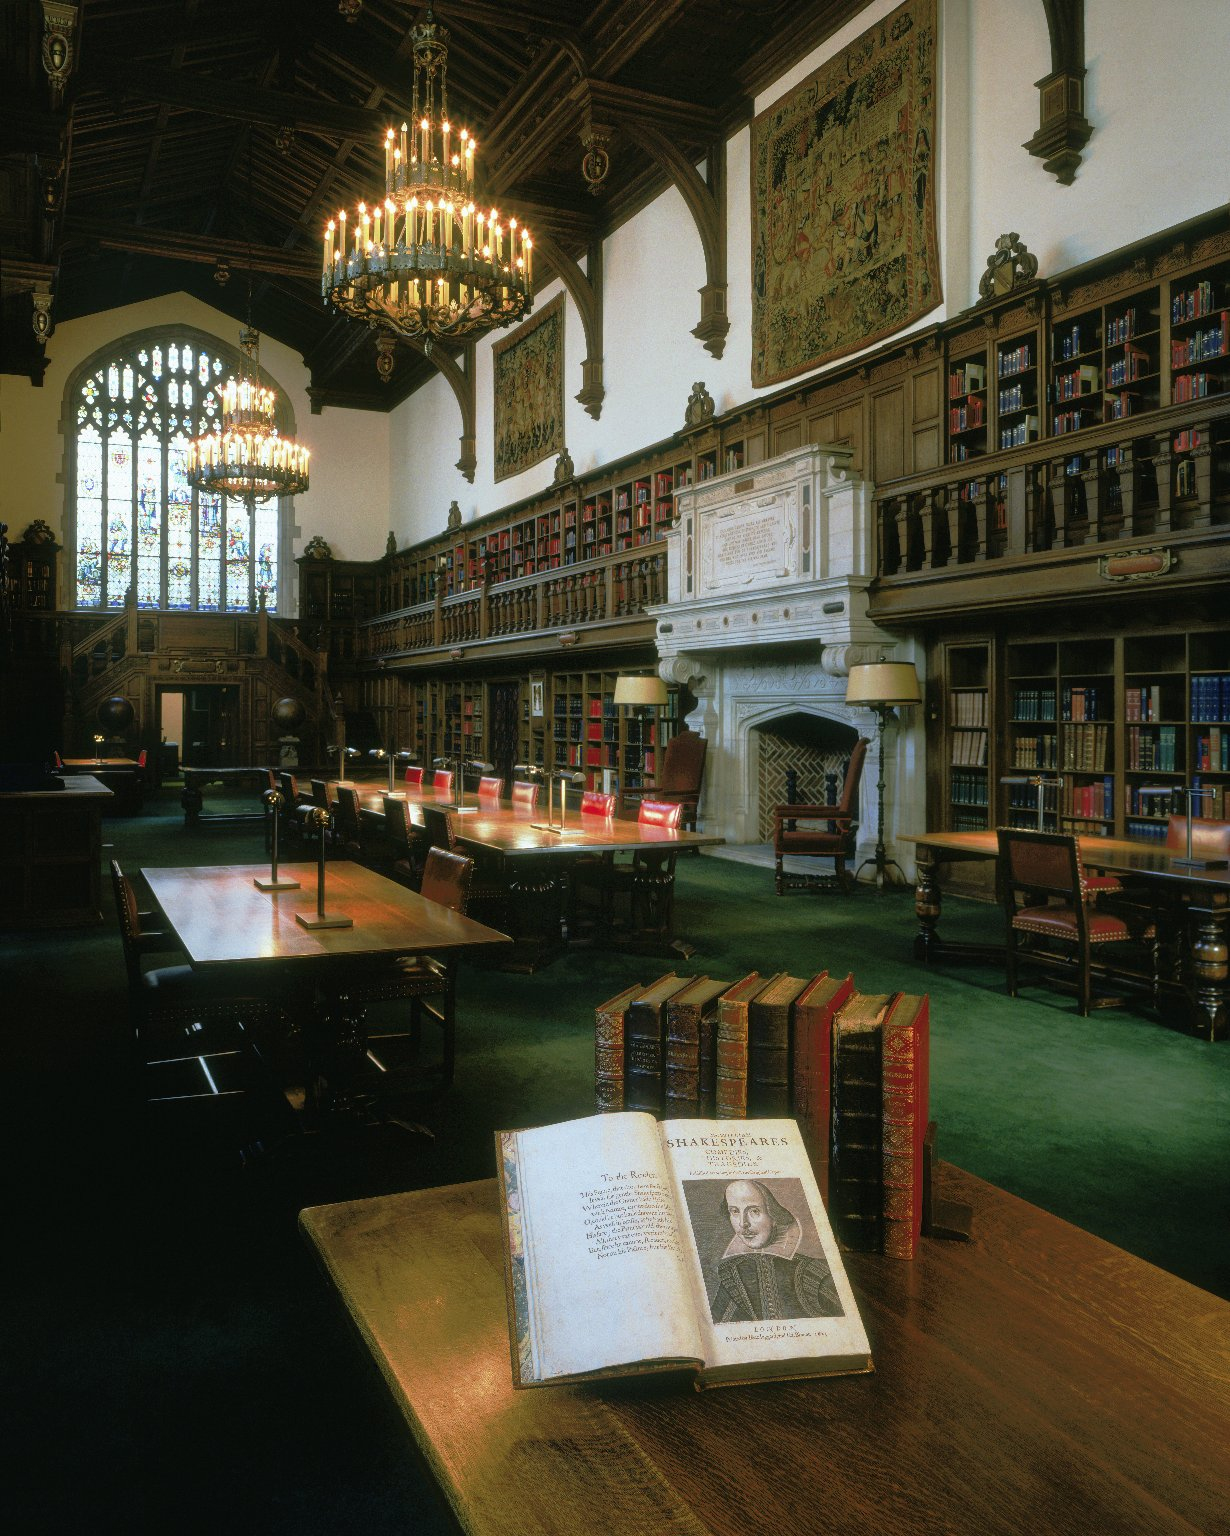 The Gail Kern Paster Reading Room at the Folger Shakespeare Library, with a [[First Folio]] in the foreground.